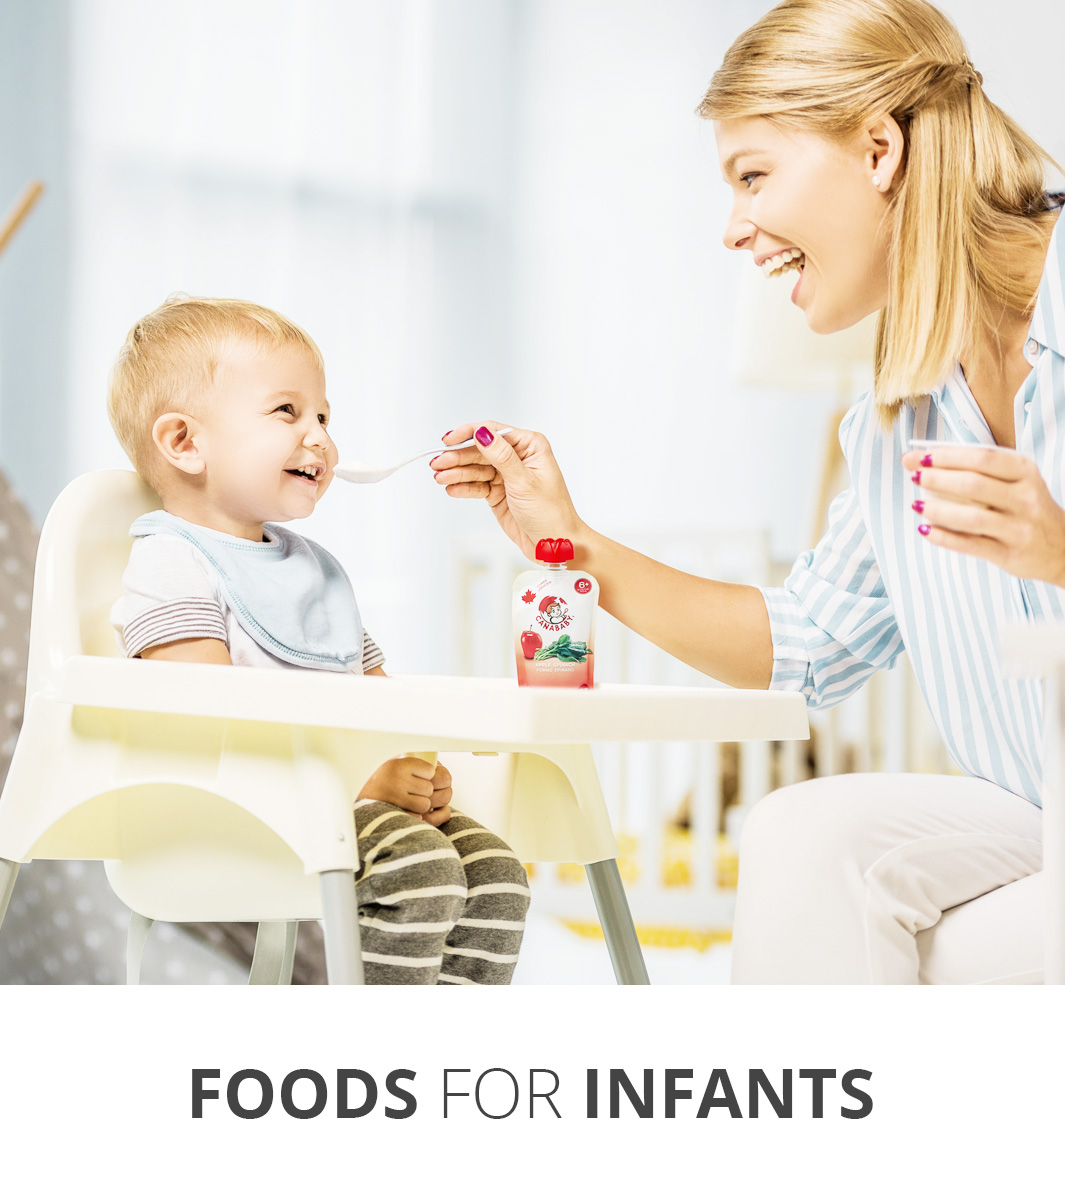 Food for infants